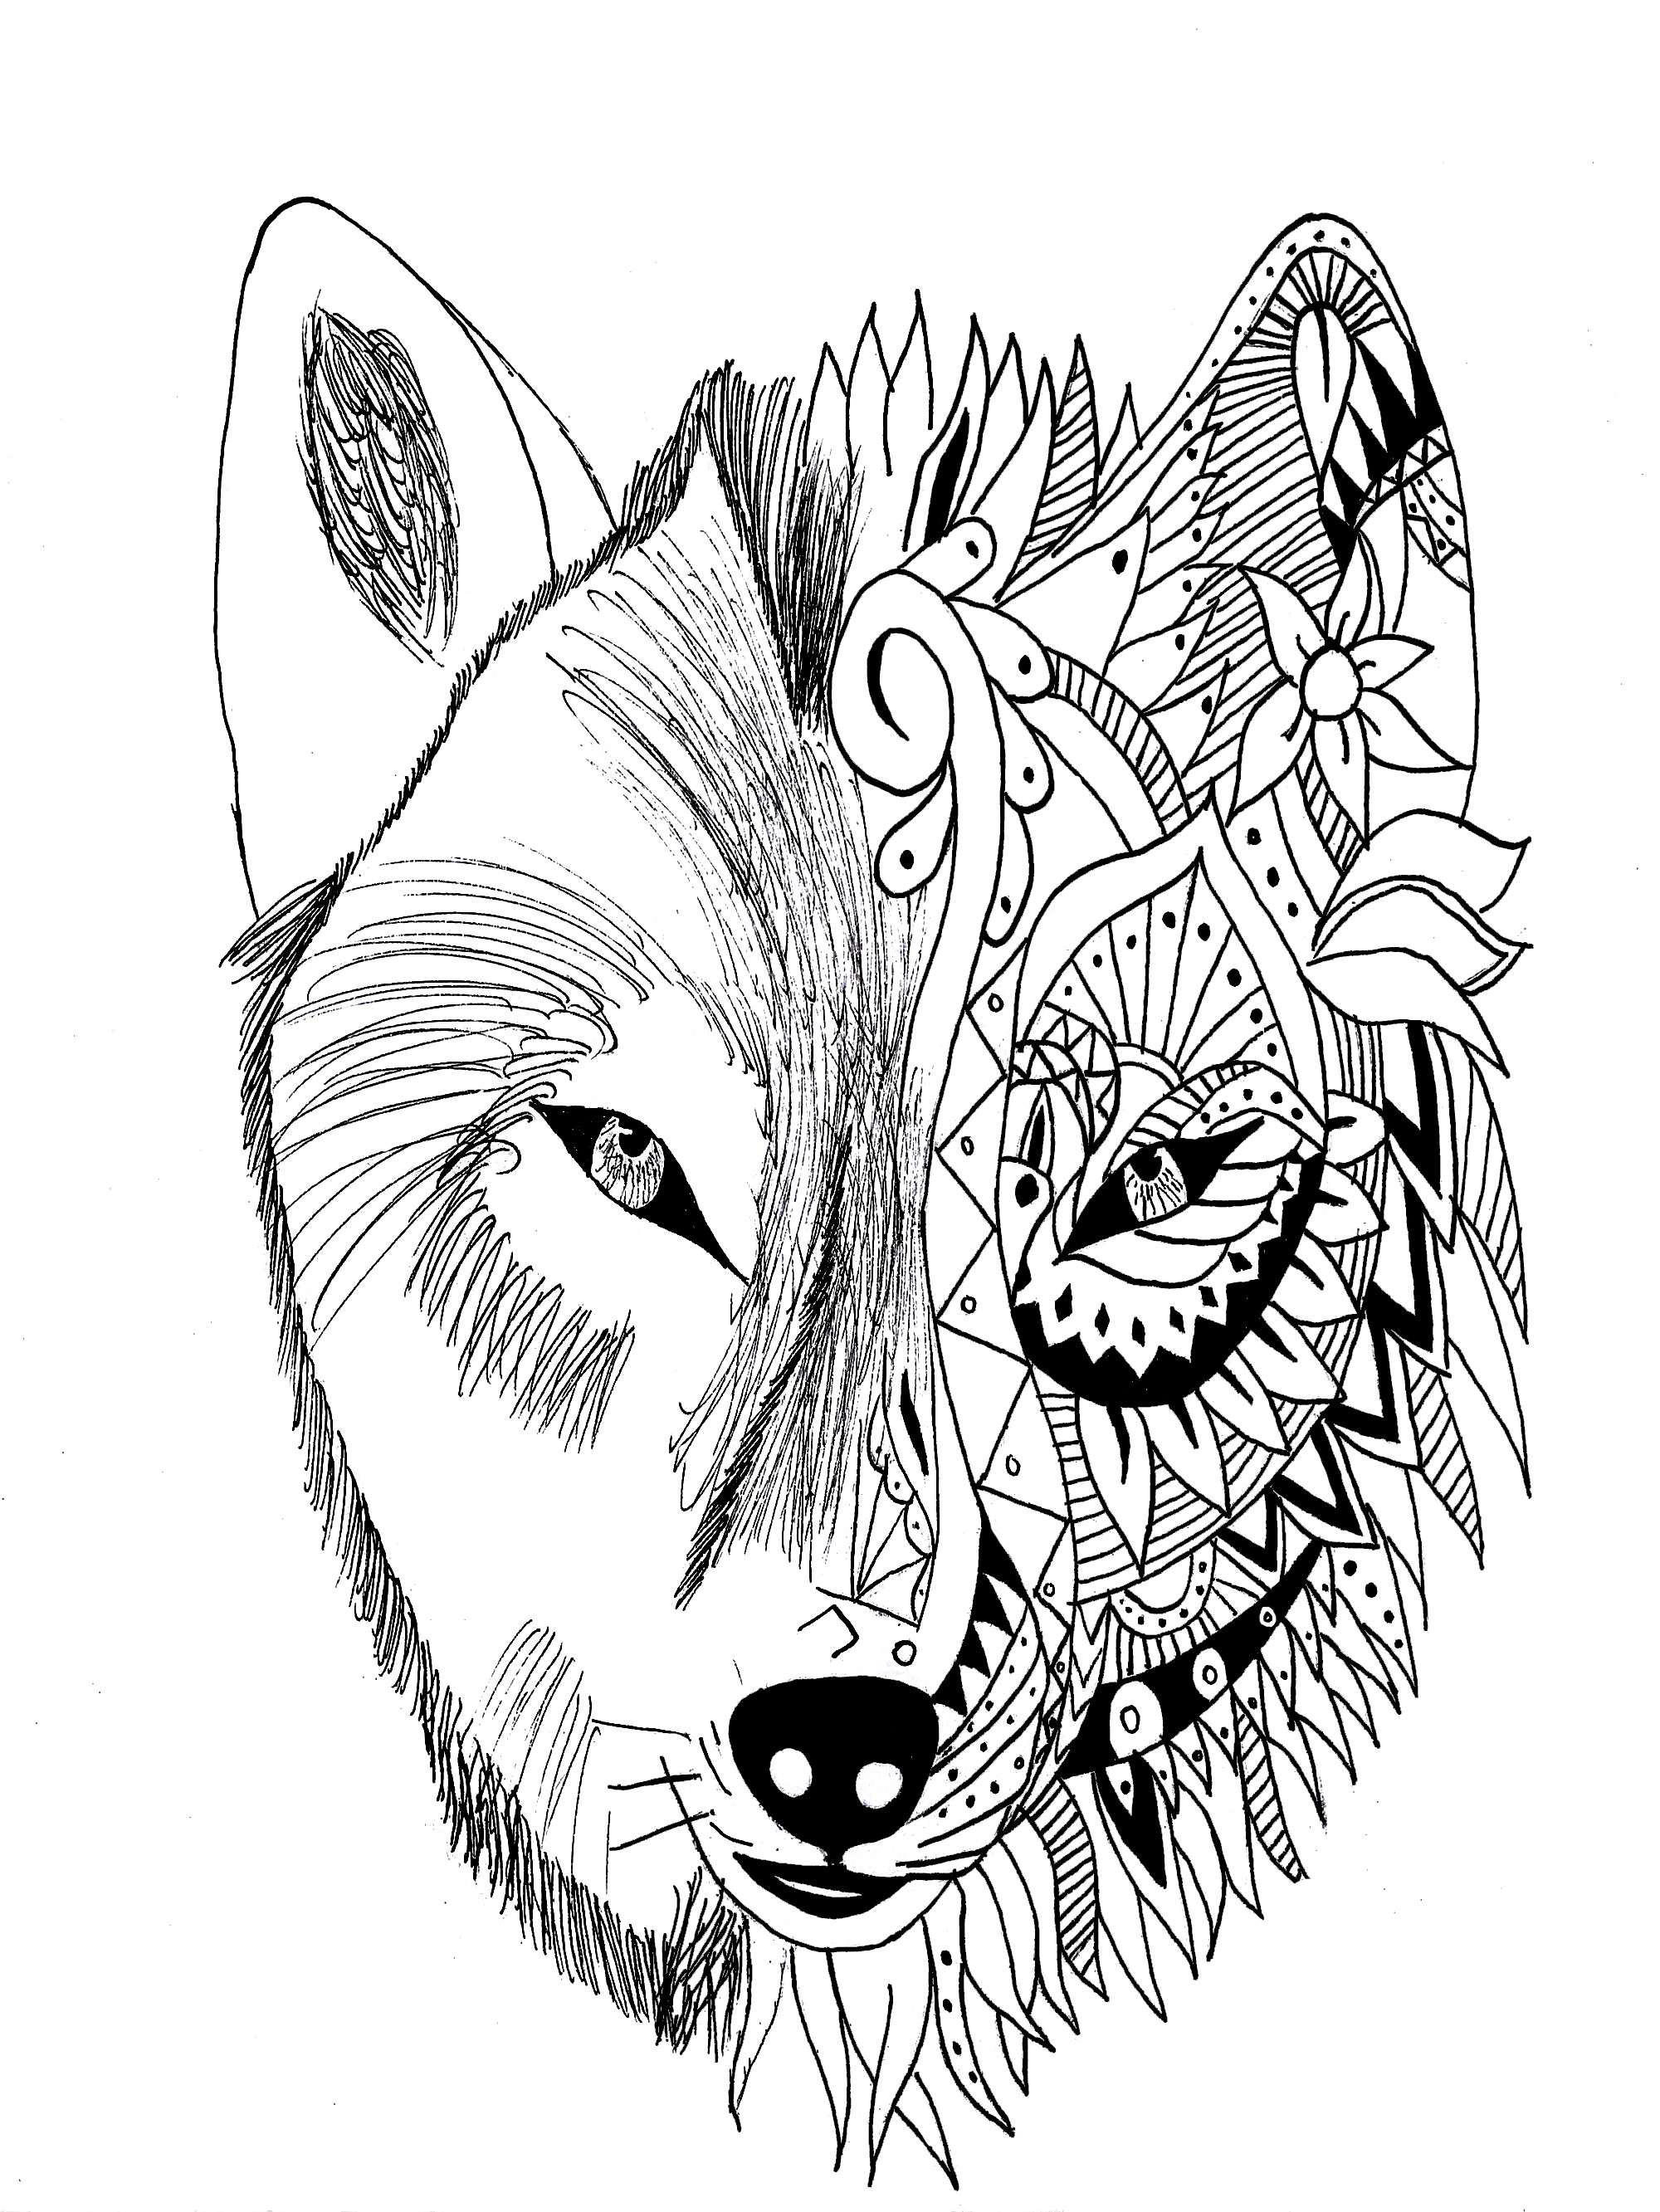 Tattoo wolf krissy - Tattoos - Coloring pages for adults